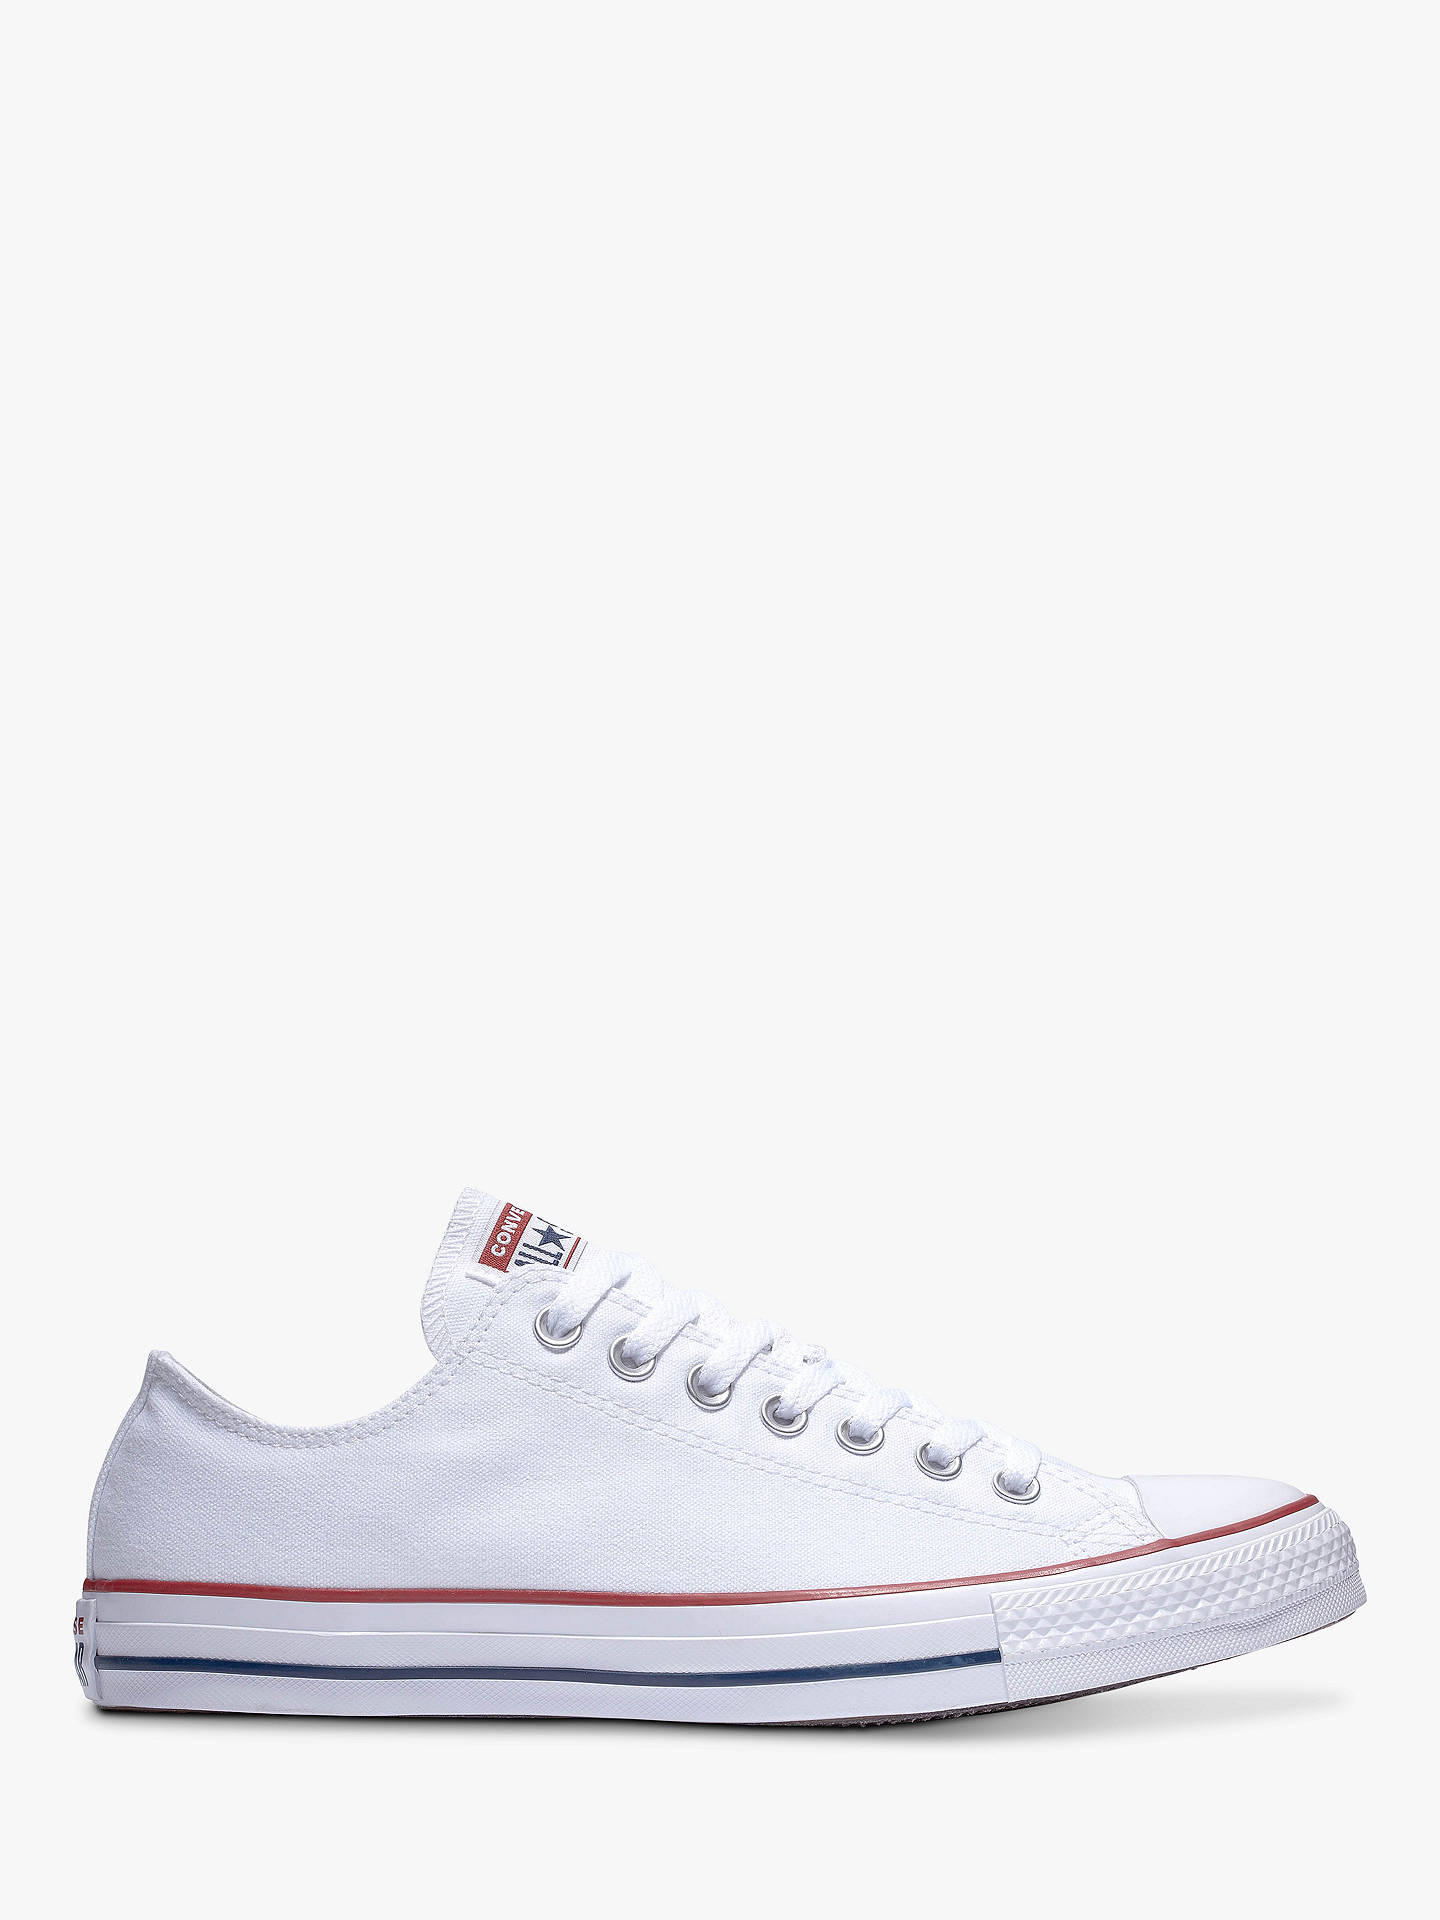 1b14d5e542d42c Converse Chuck Taylor All Star Canvas Ox Low-Top Trainers at John ...